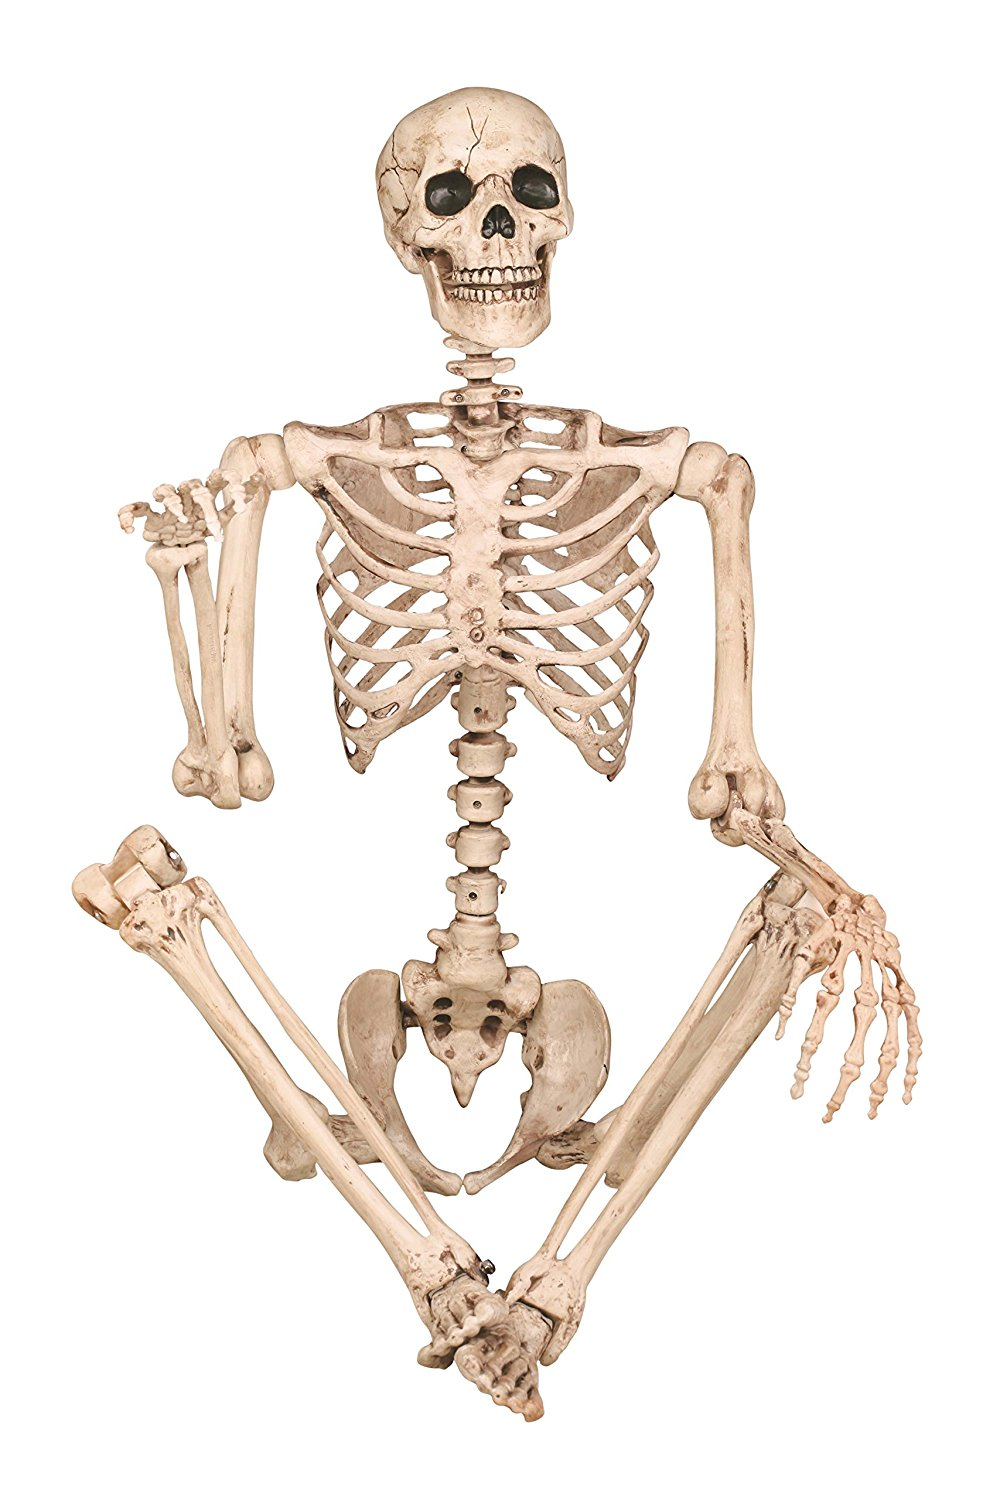 Posable Plastic Skeleton Prop